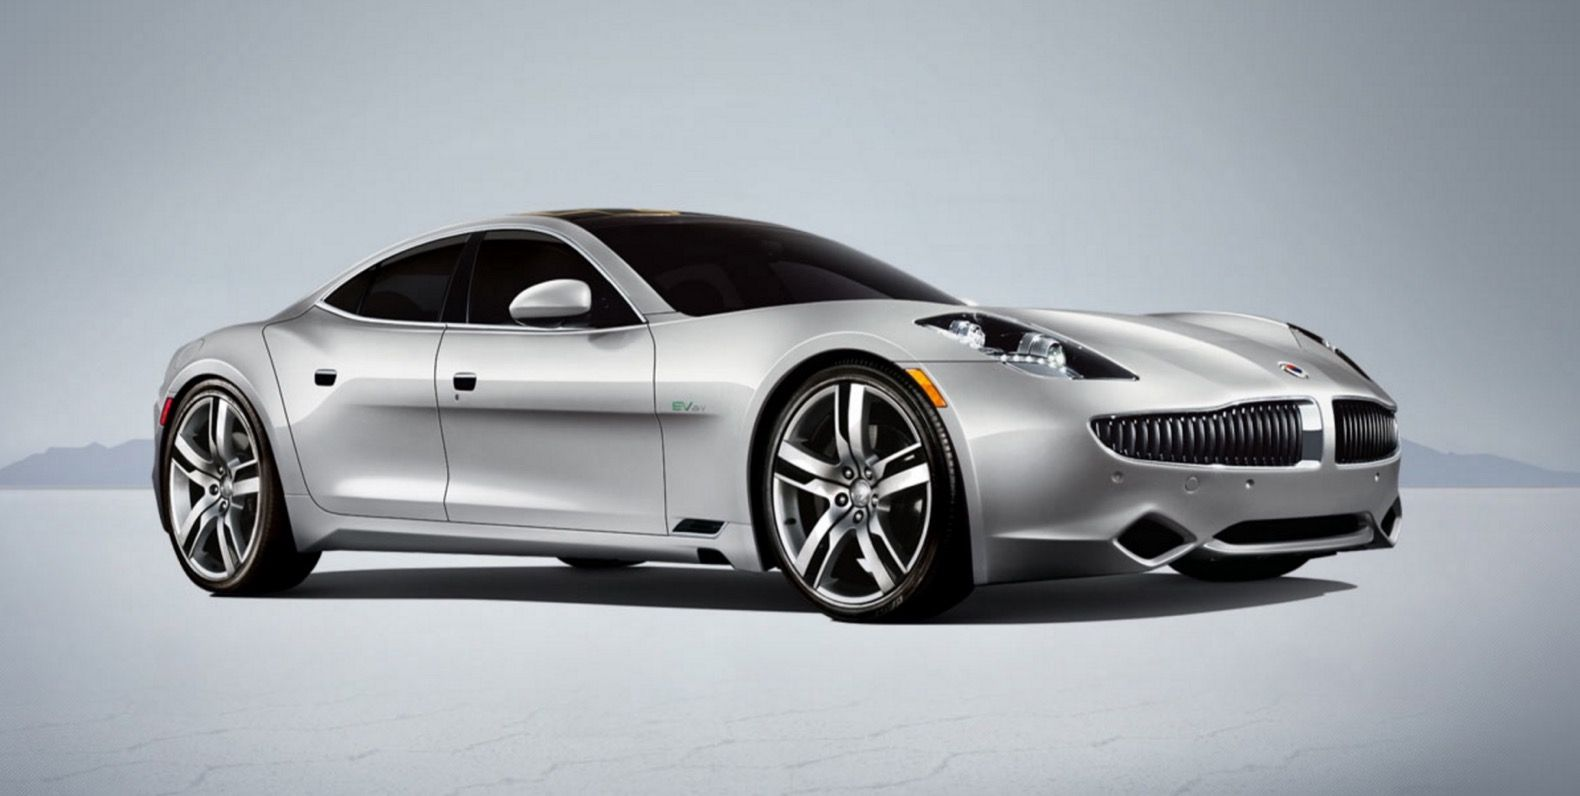 Production of the Fisker Karma could relaunch in mid-2016